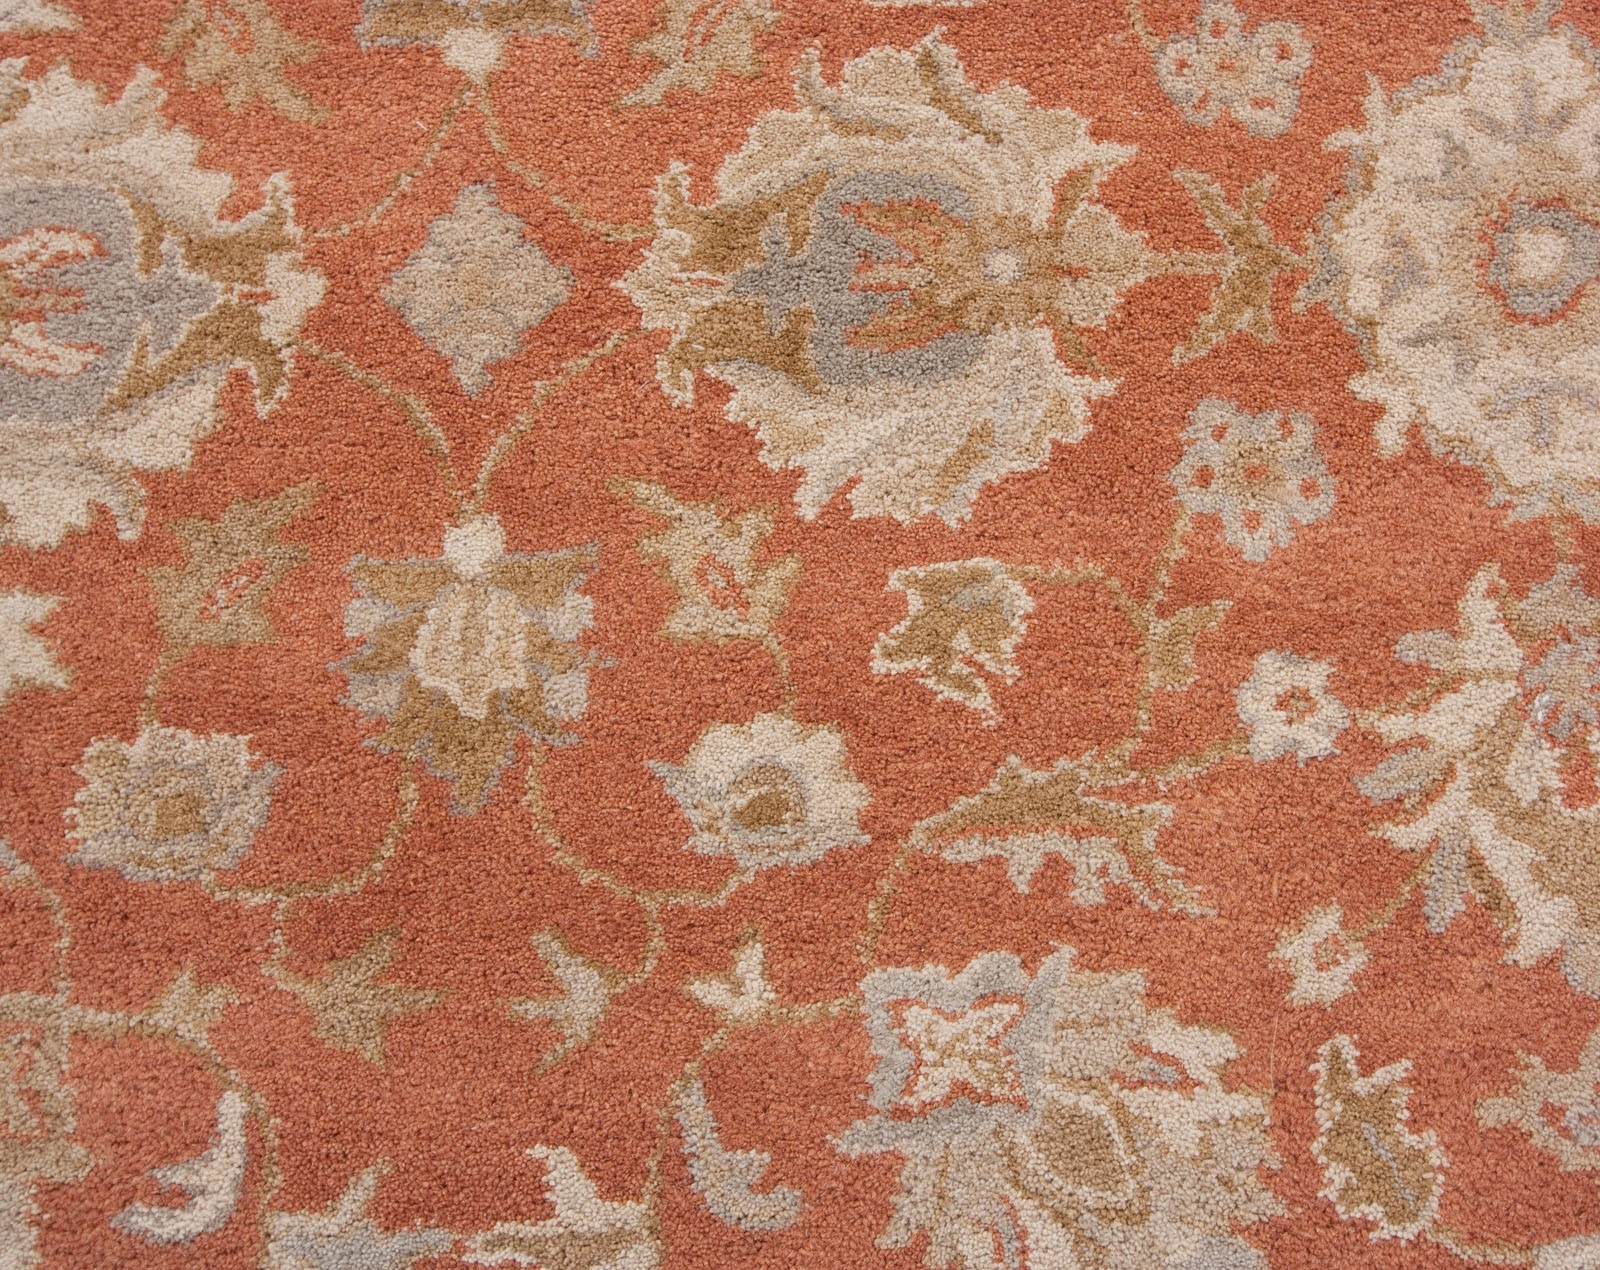 Decorating Gorgeous Area Rugs Lowes For Floor Accessories Ideas With Regard To Orange Floor Rugs (View 15 of 15)